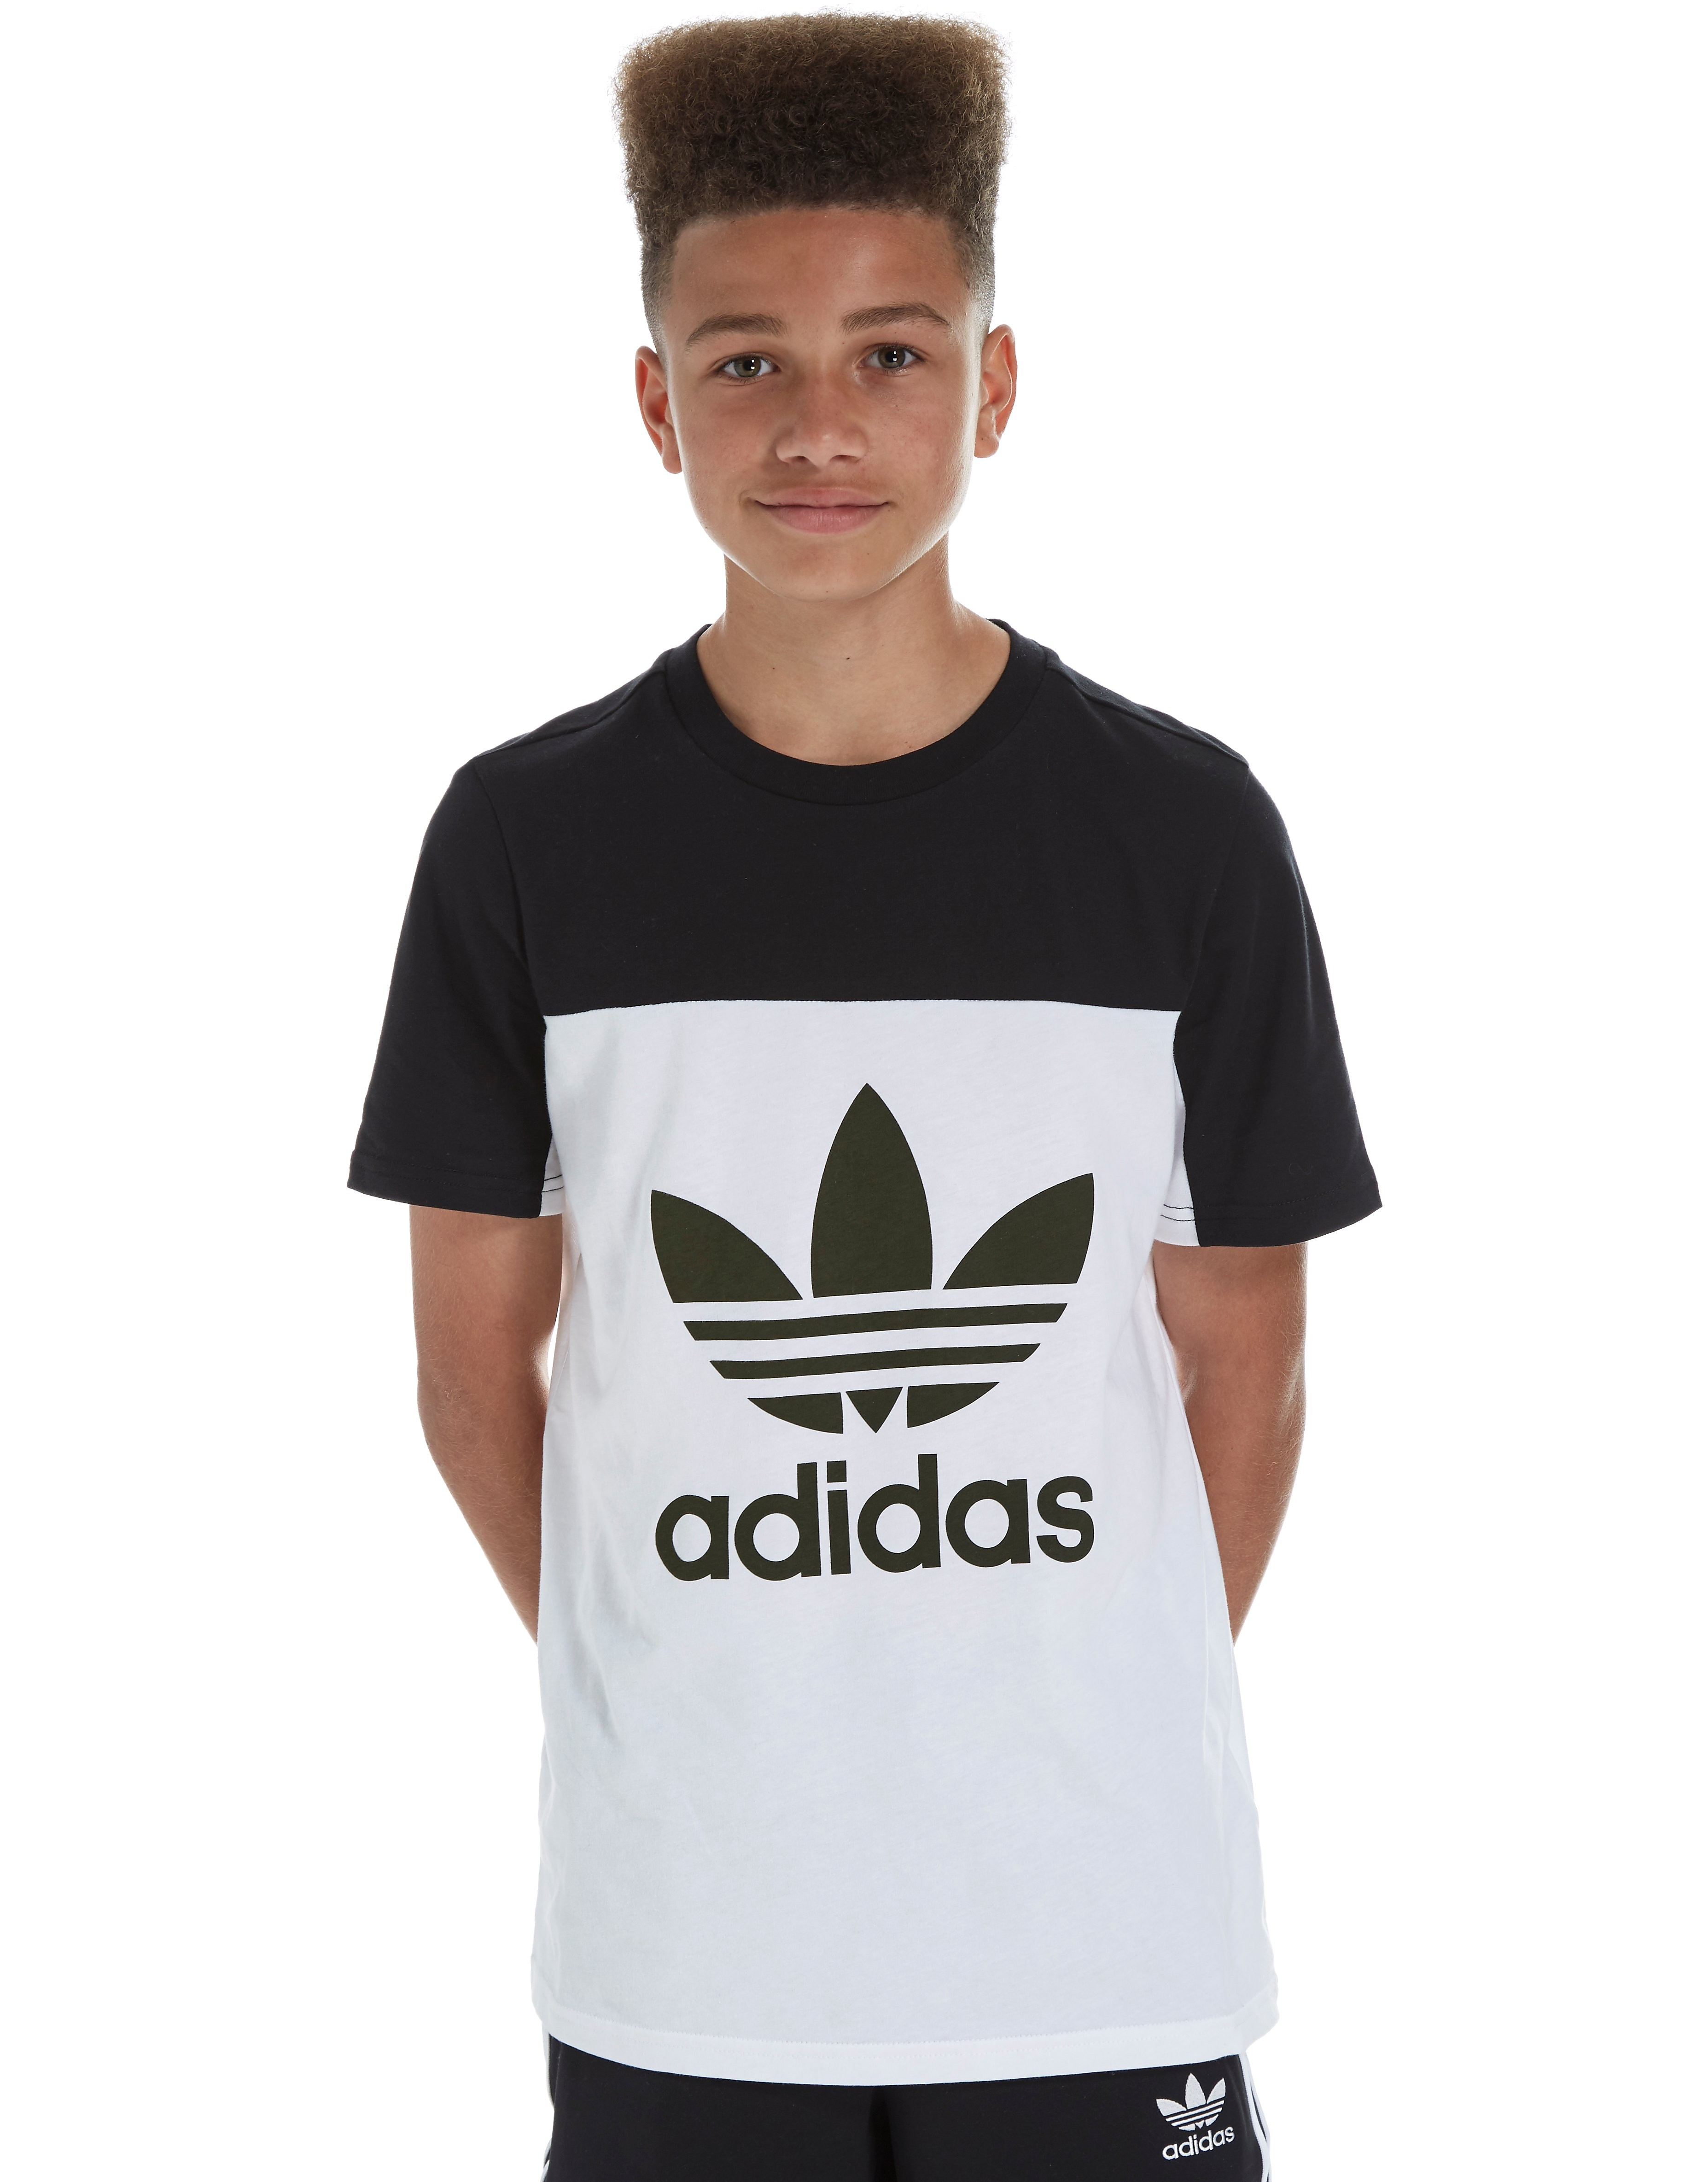 adidas Originals T-shirt Colour Block Junior